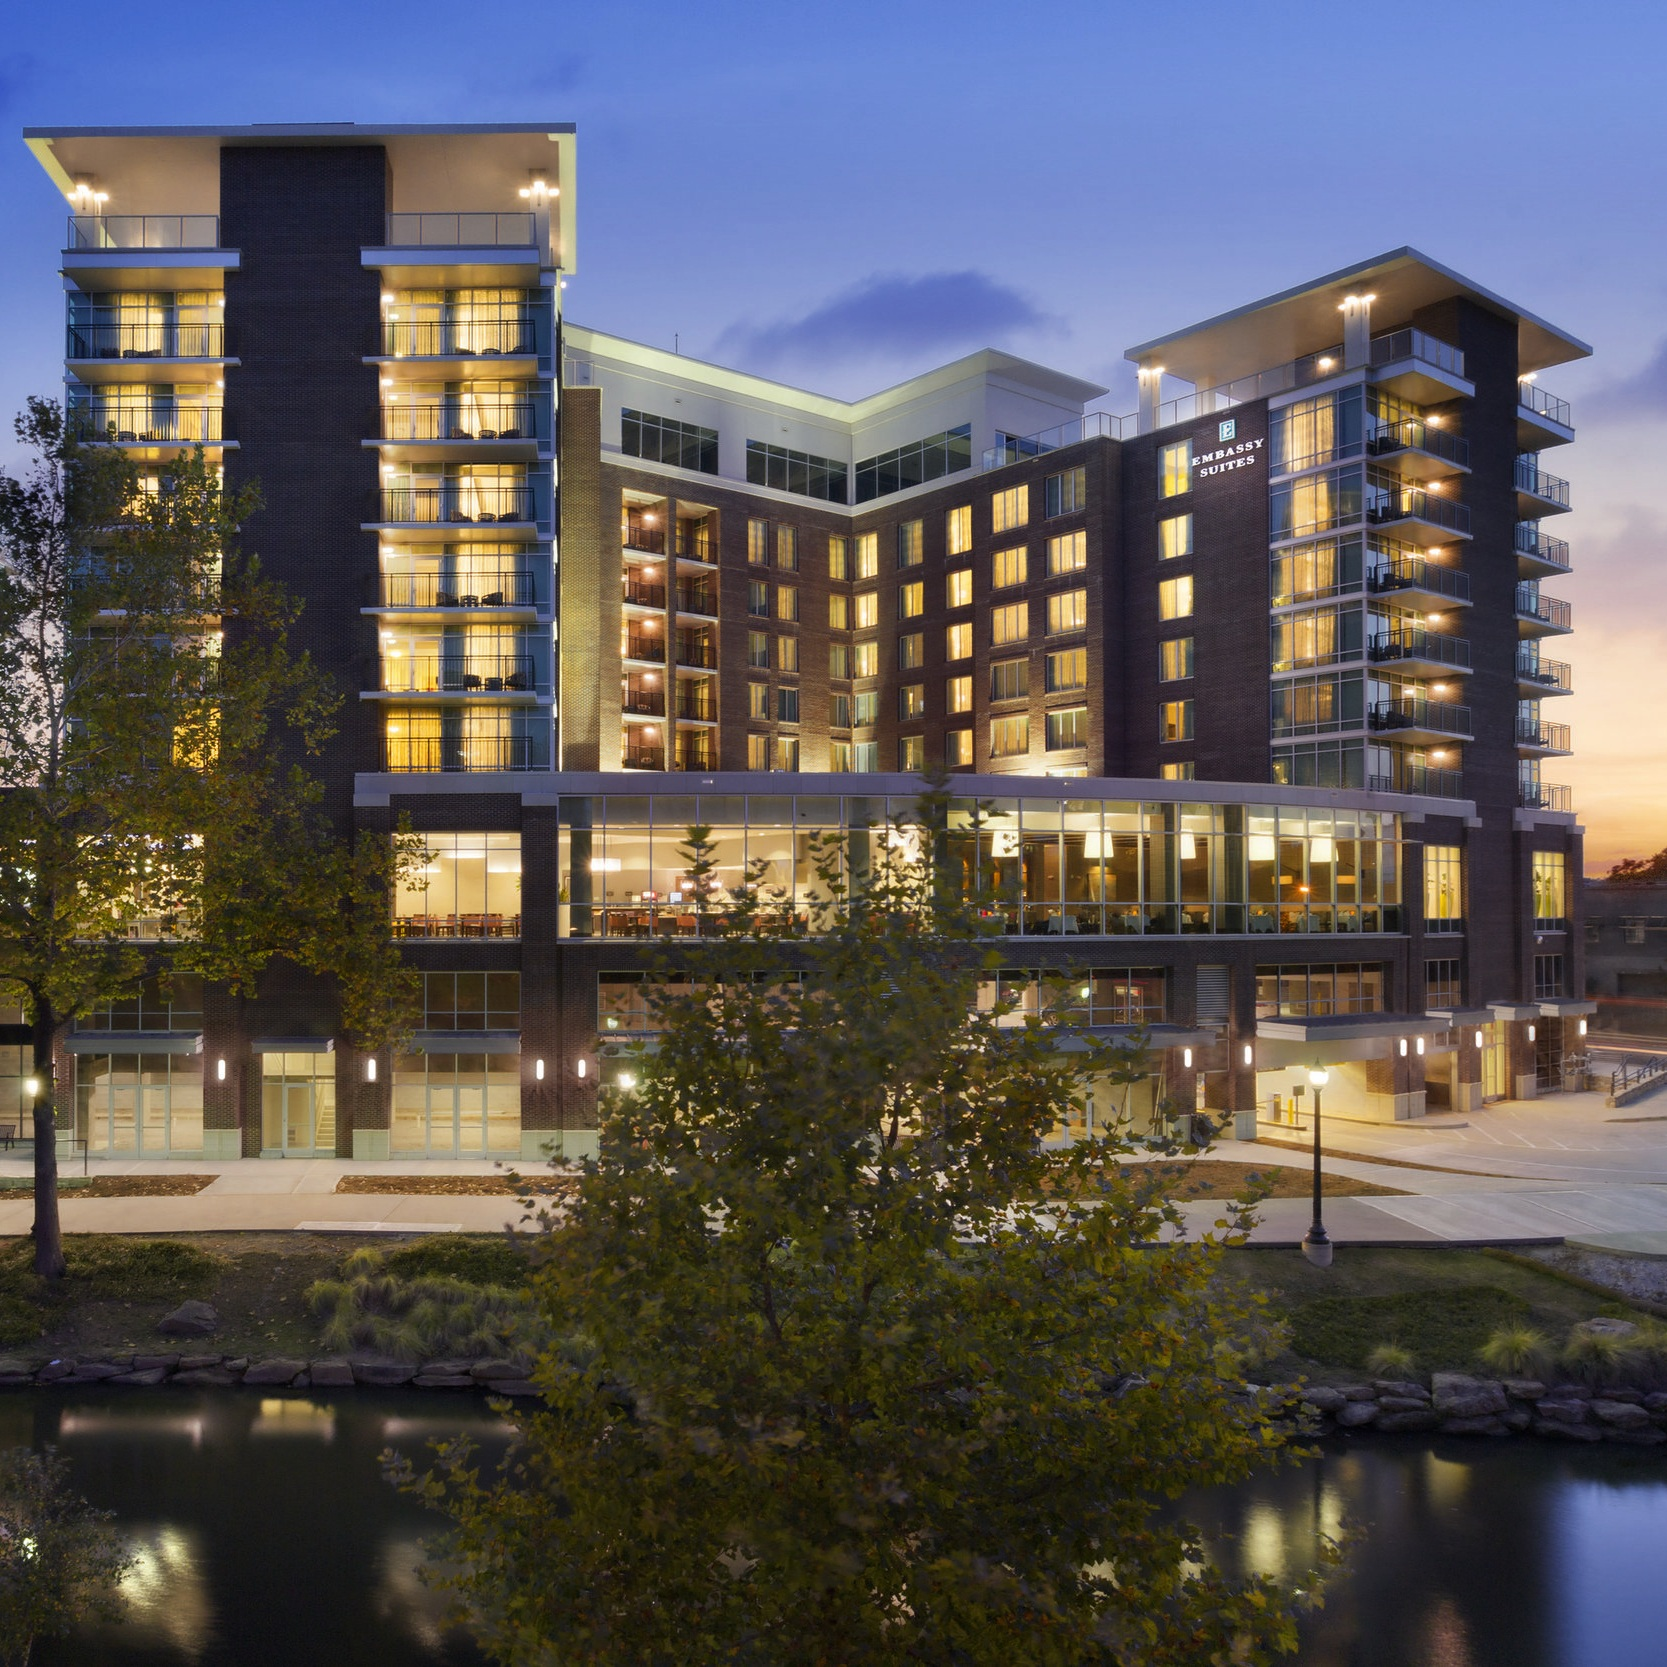 Embassy+Suites+by+Hilton+Greenville+Downtown+RiverPlace+Exterior.jpg